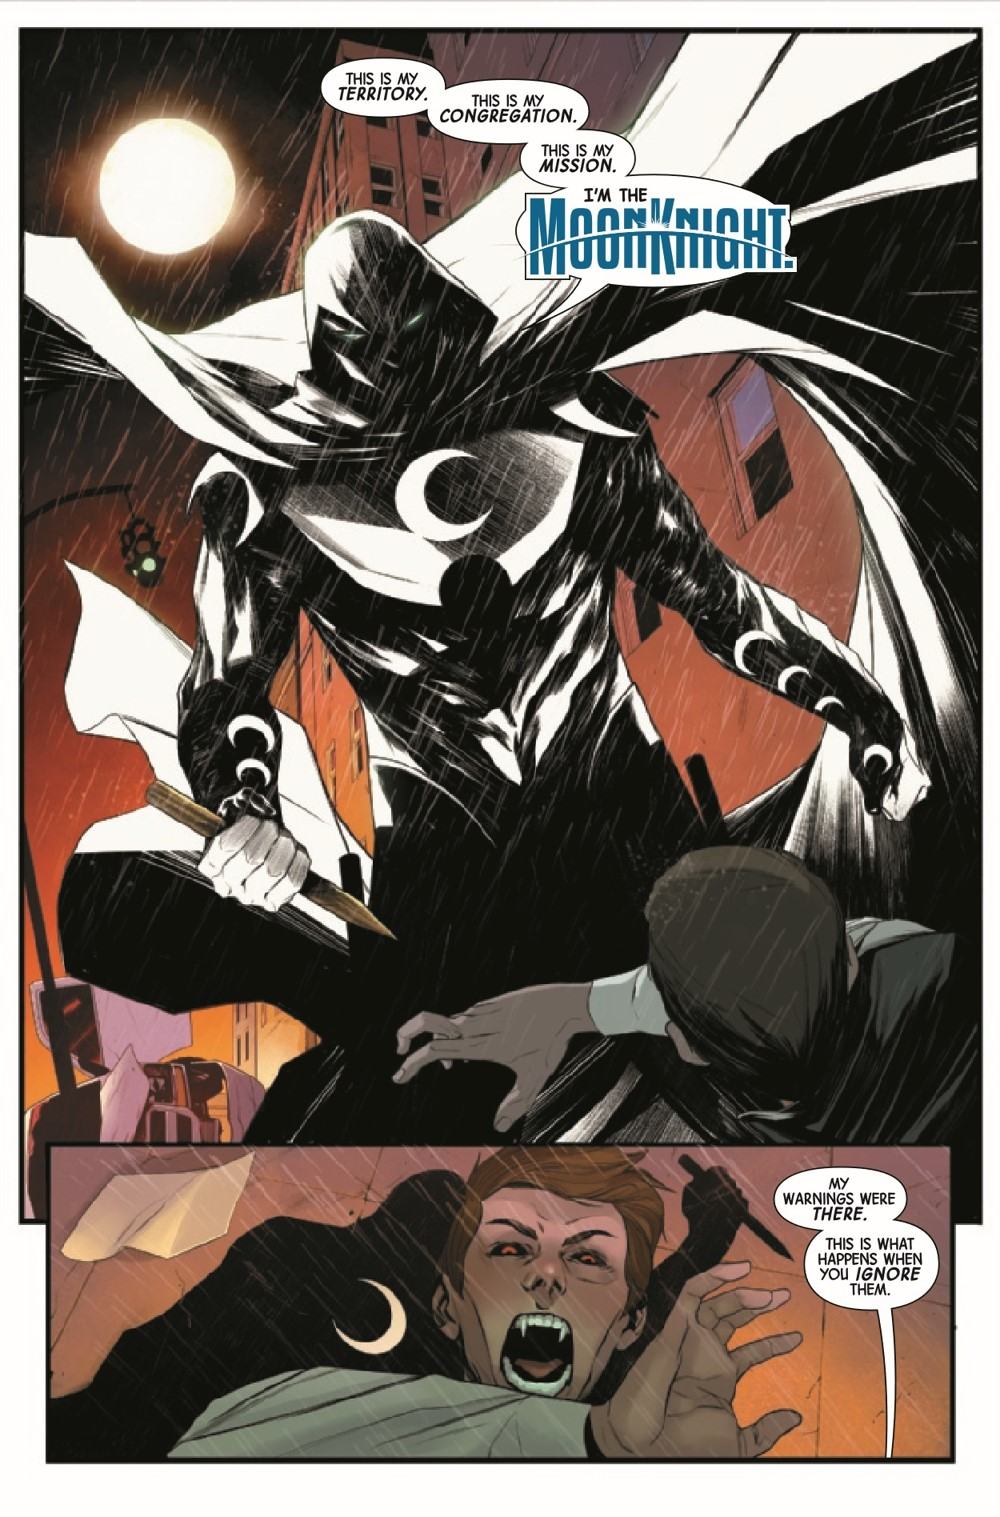 MOONKN2021001_Preview-9 ComicList Previews: MOON KNIGHT #1